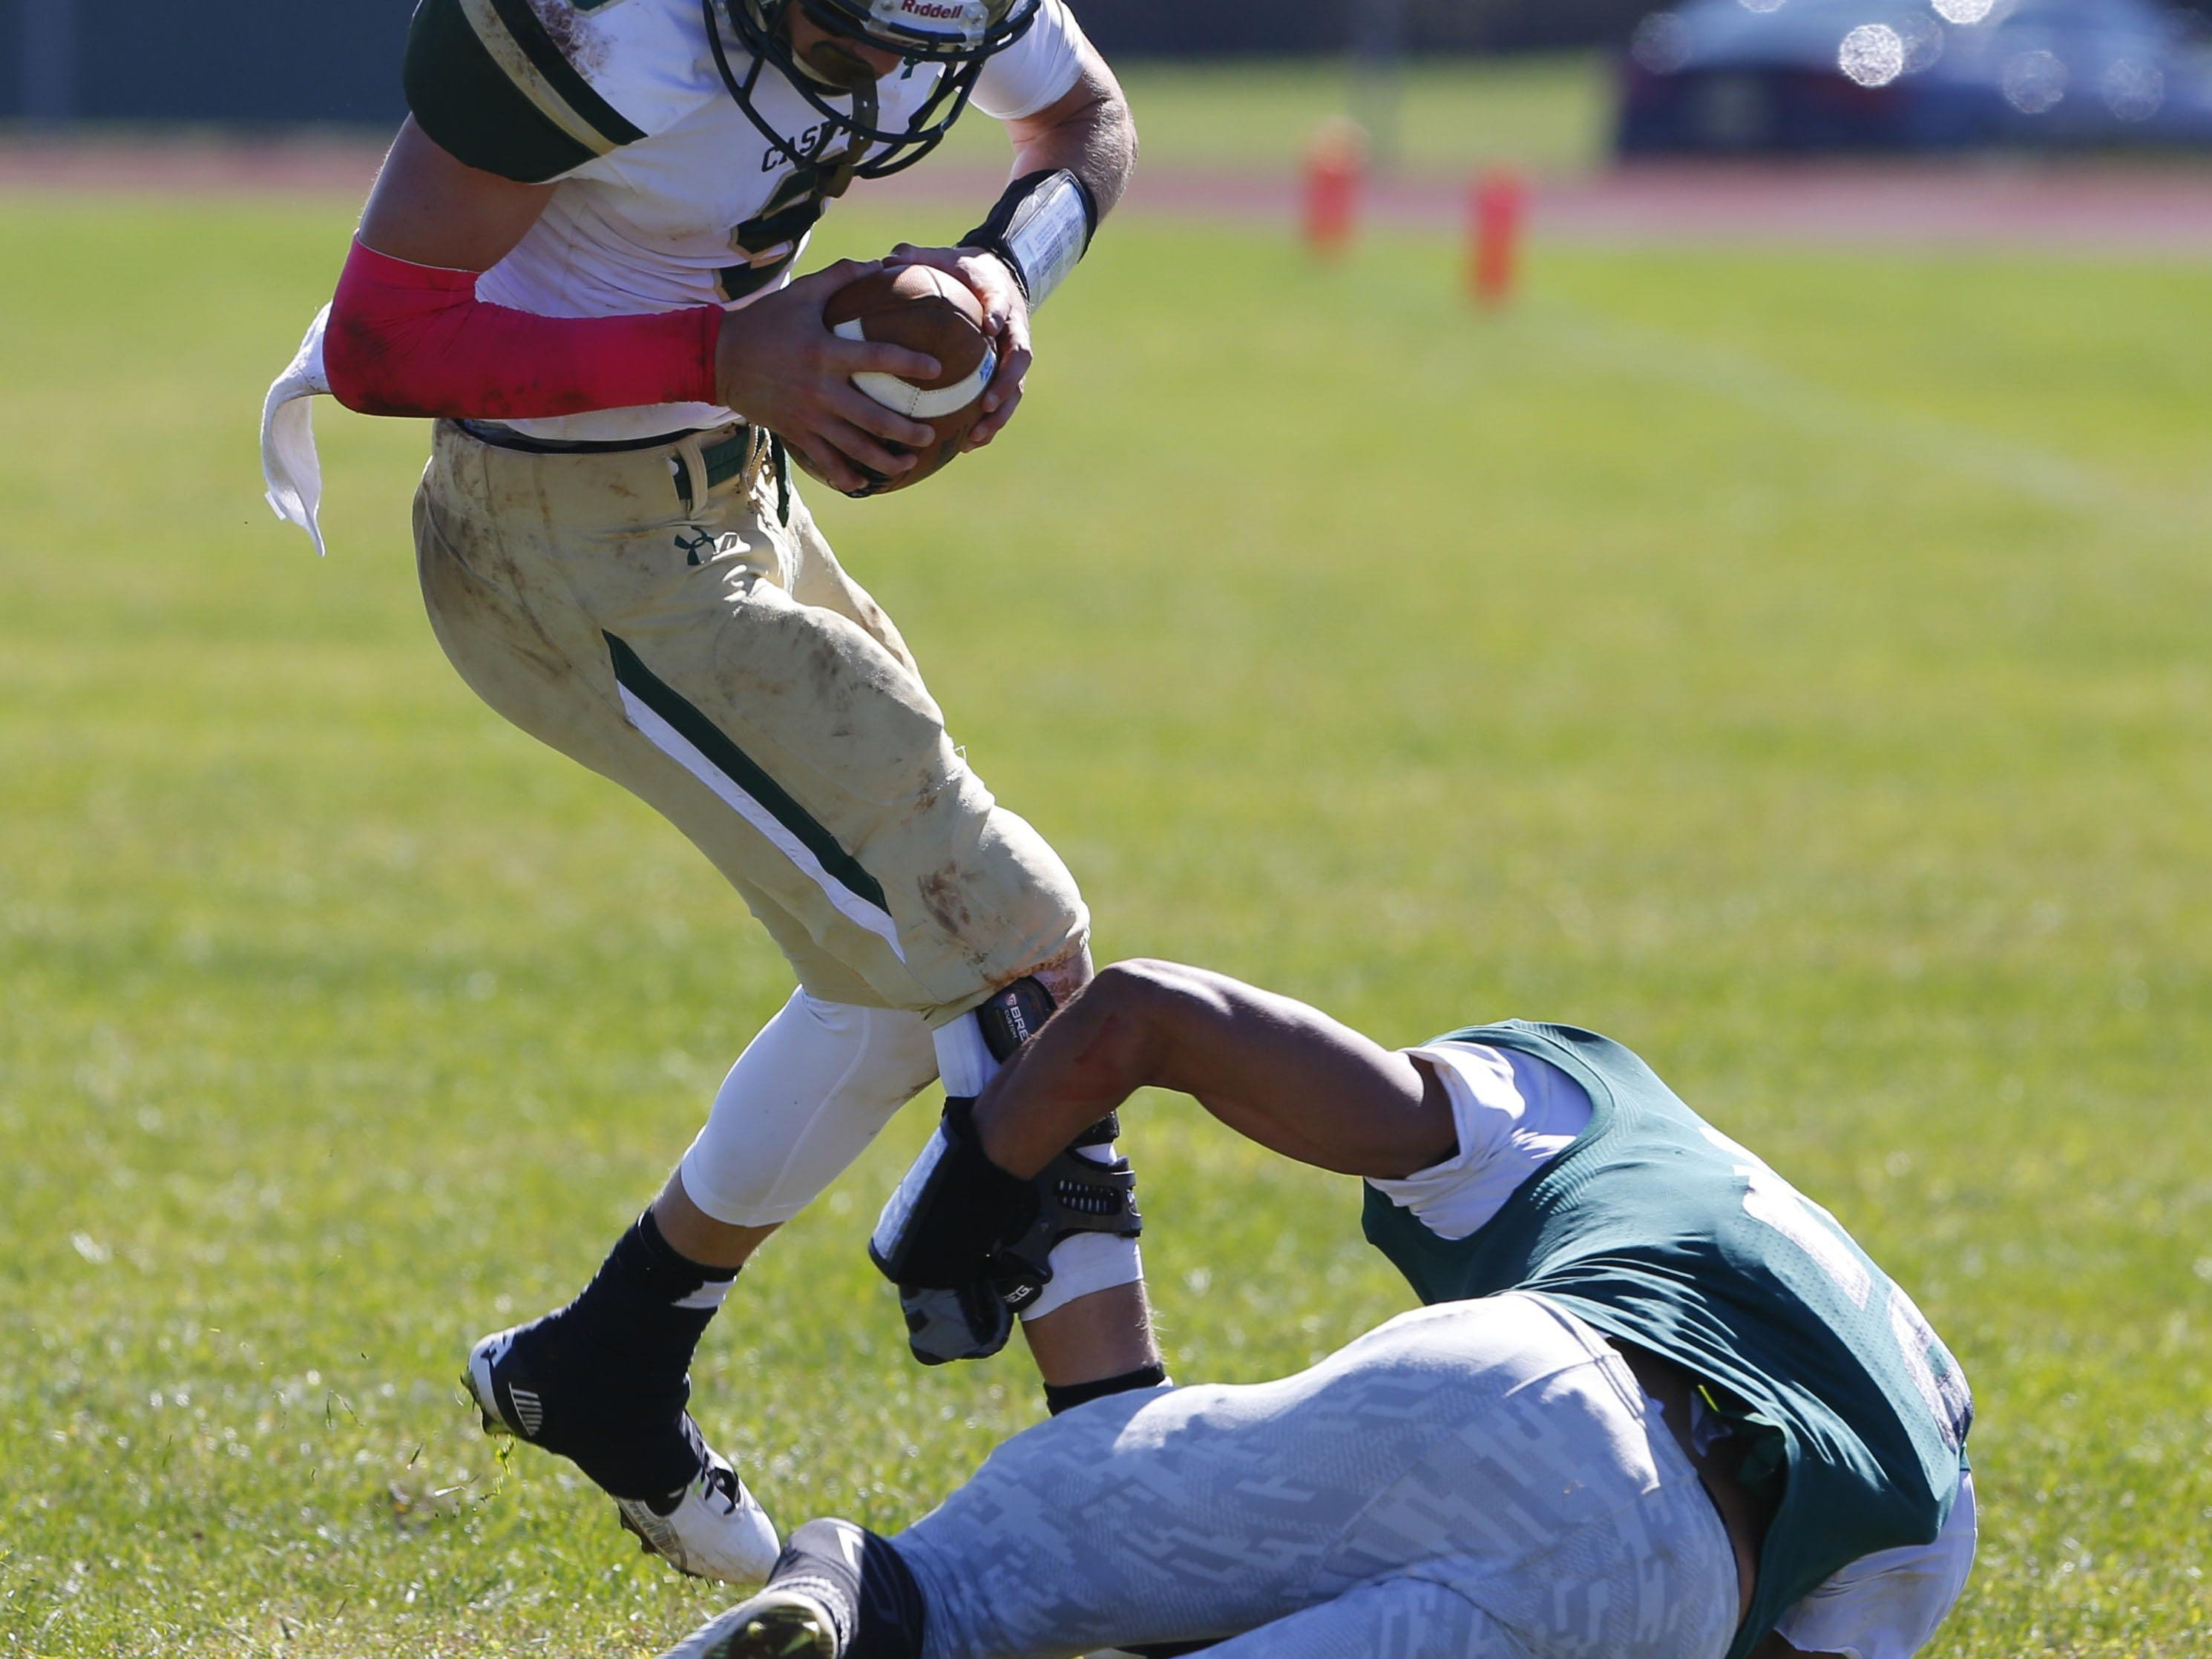 Red Bank Catholic quarter back Eddie Hahn (9) is tackle by Khaled Mostafa (28) of Colts Neck during game at Colts Neck High School, Colts Neck,NJ. Saturday, October 10, 2015.